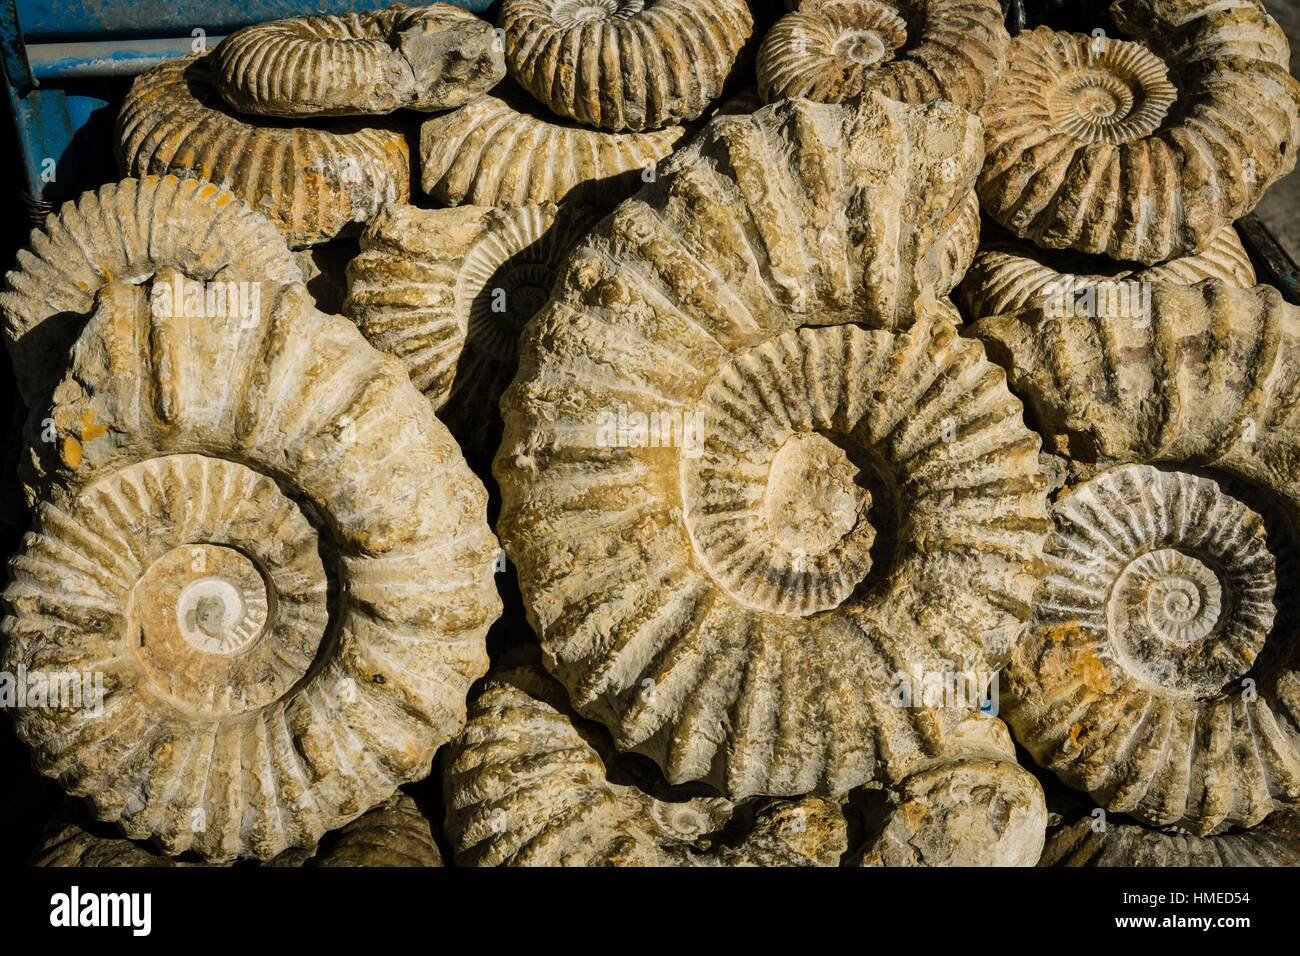 Fossils for sale in the souk  Chefchaouen (Chaouen), Morocco